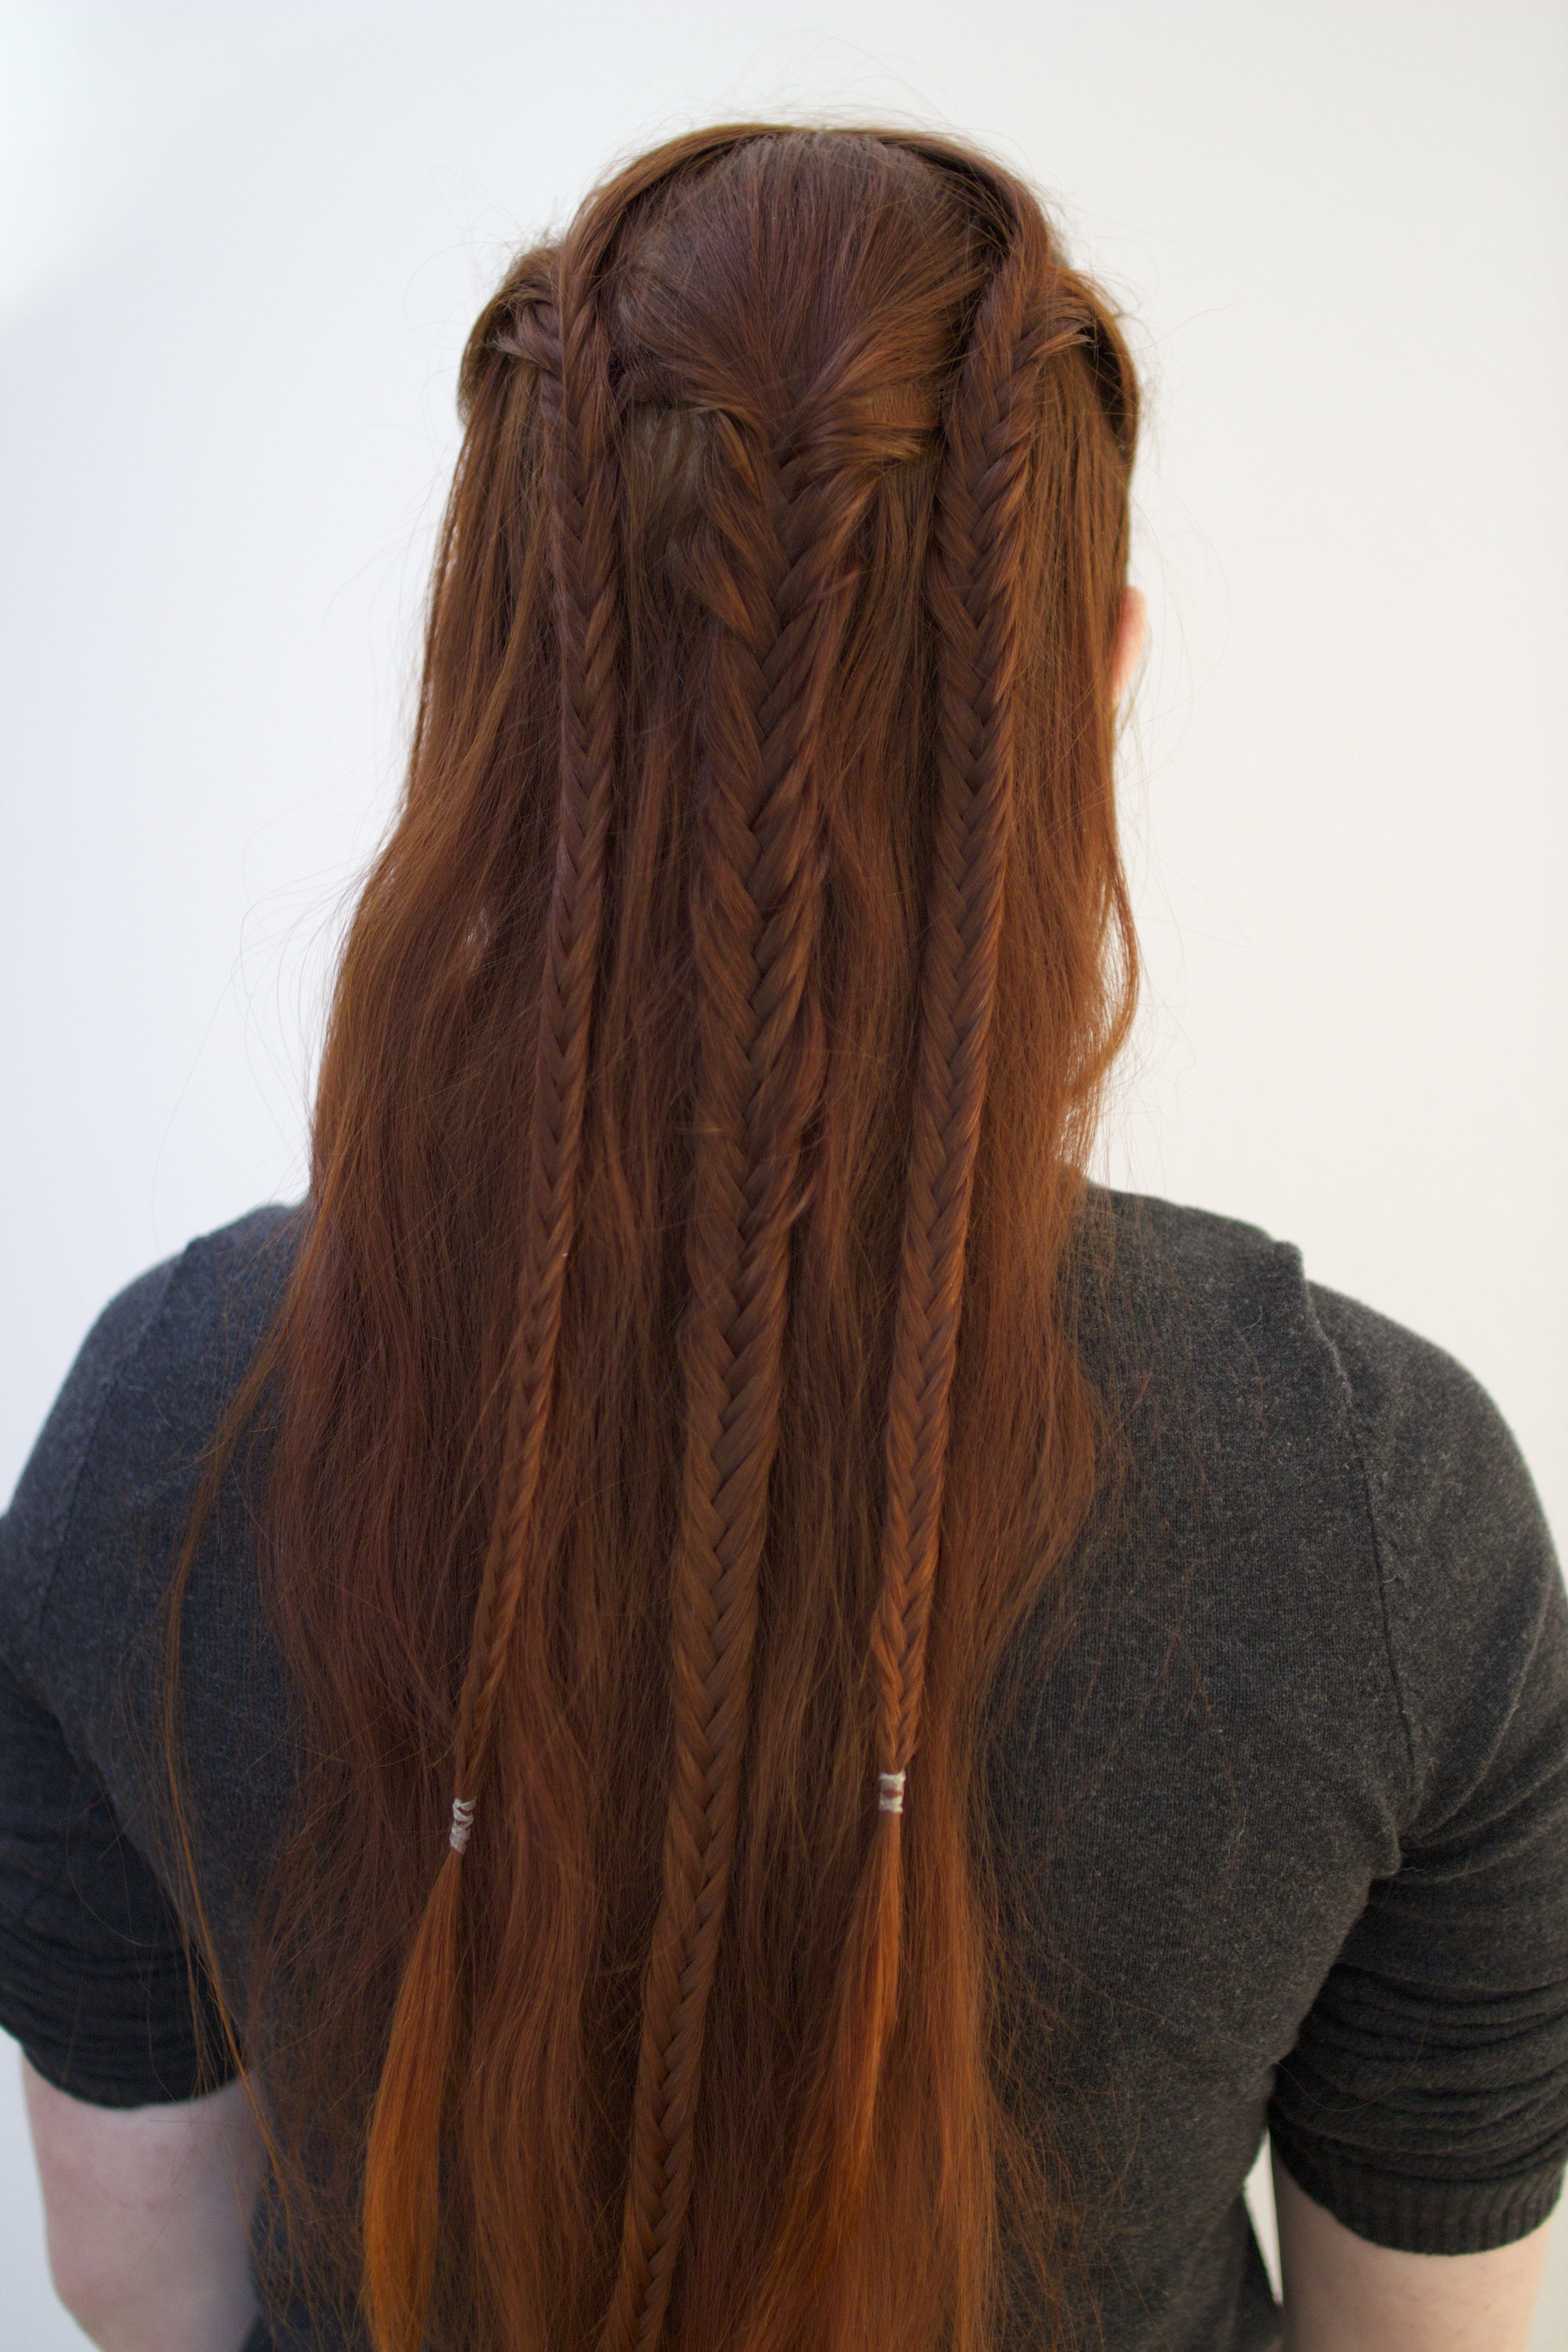 Arwen braided hairstyle | Celtic/Medieval/Fantasy | Hair ...